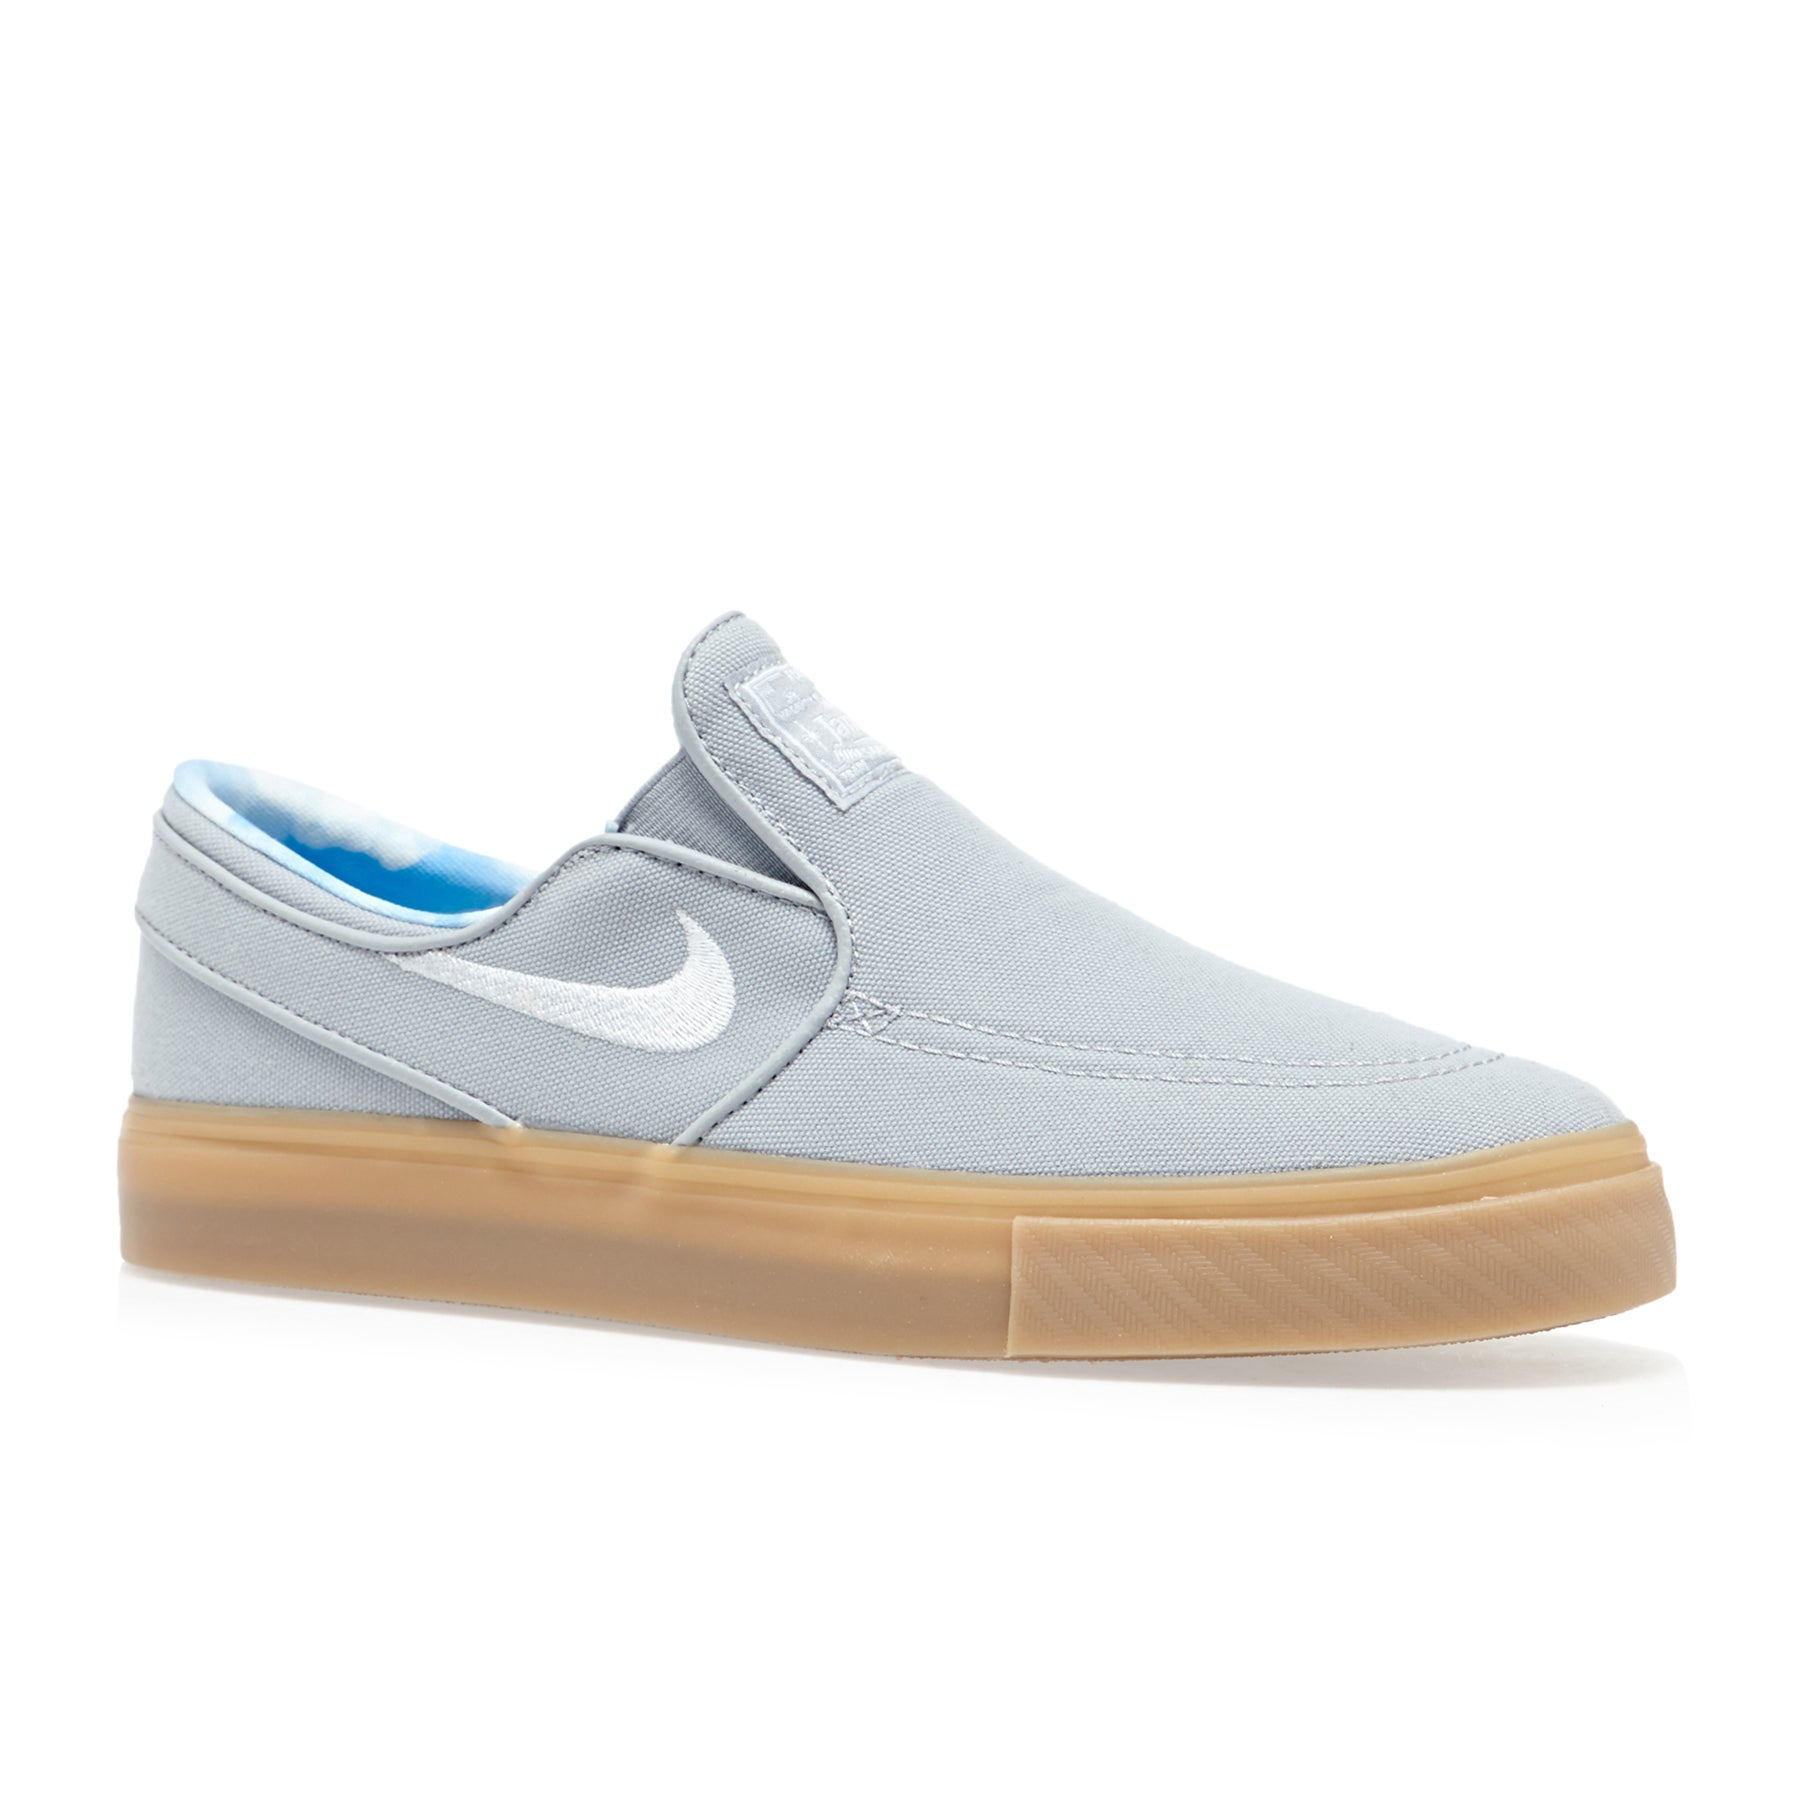 63460b123a3 Calzado Boys Nike SB Stefan Janoski Canvas Slip On Print Gs